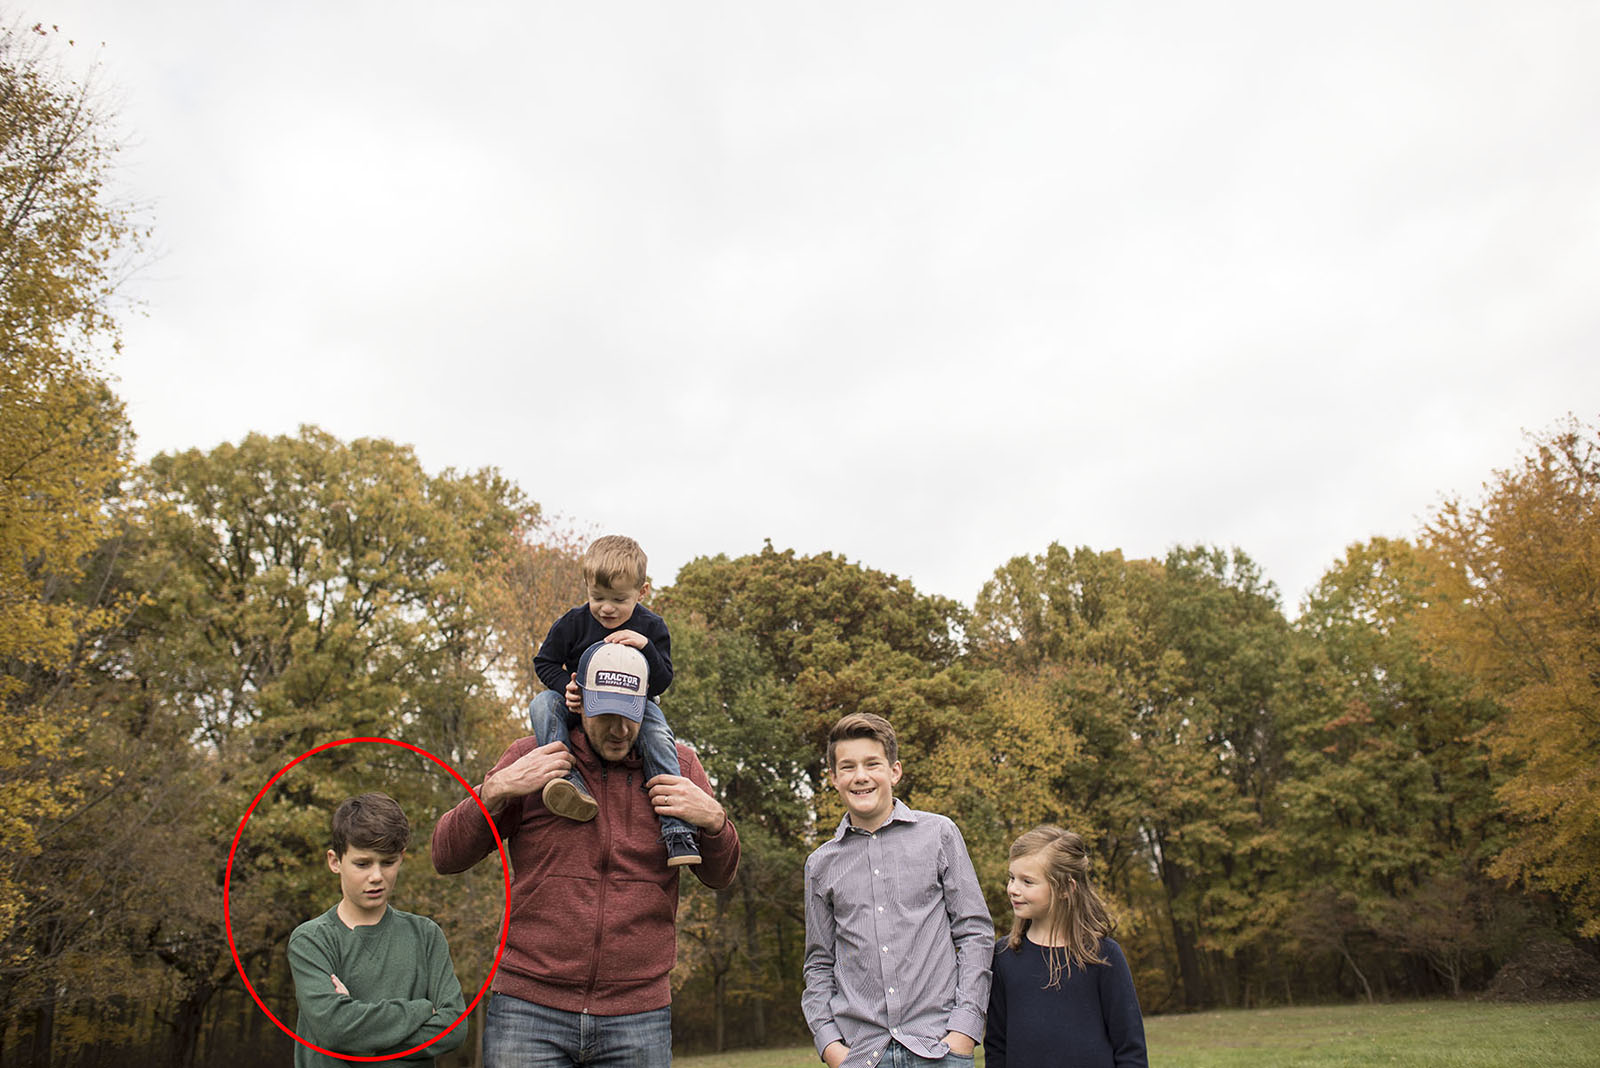 Every year family photos comes with enough drama and hilarity to keep me from daring to try it until twelve more months have passed. And because I love all of you oh so much, I am going to let you have a peek into the grand tradition that is the Bieser annual photo session.